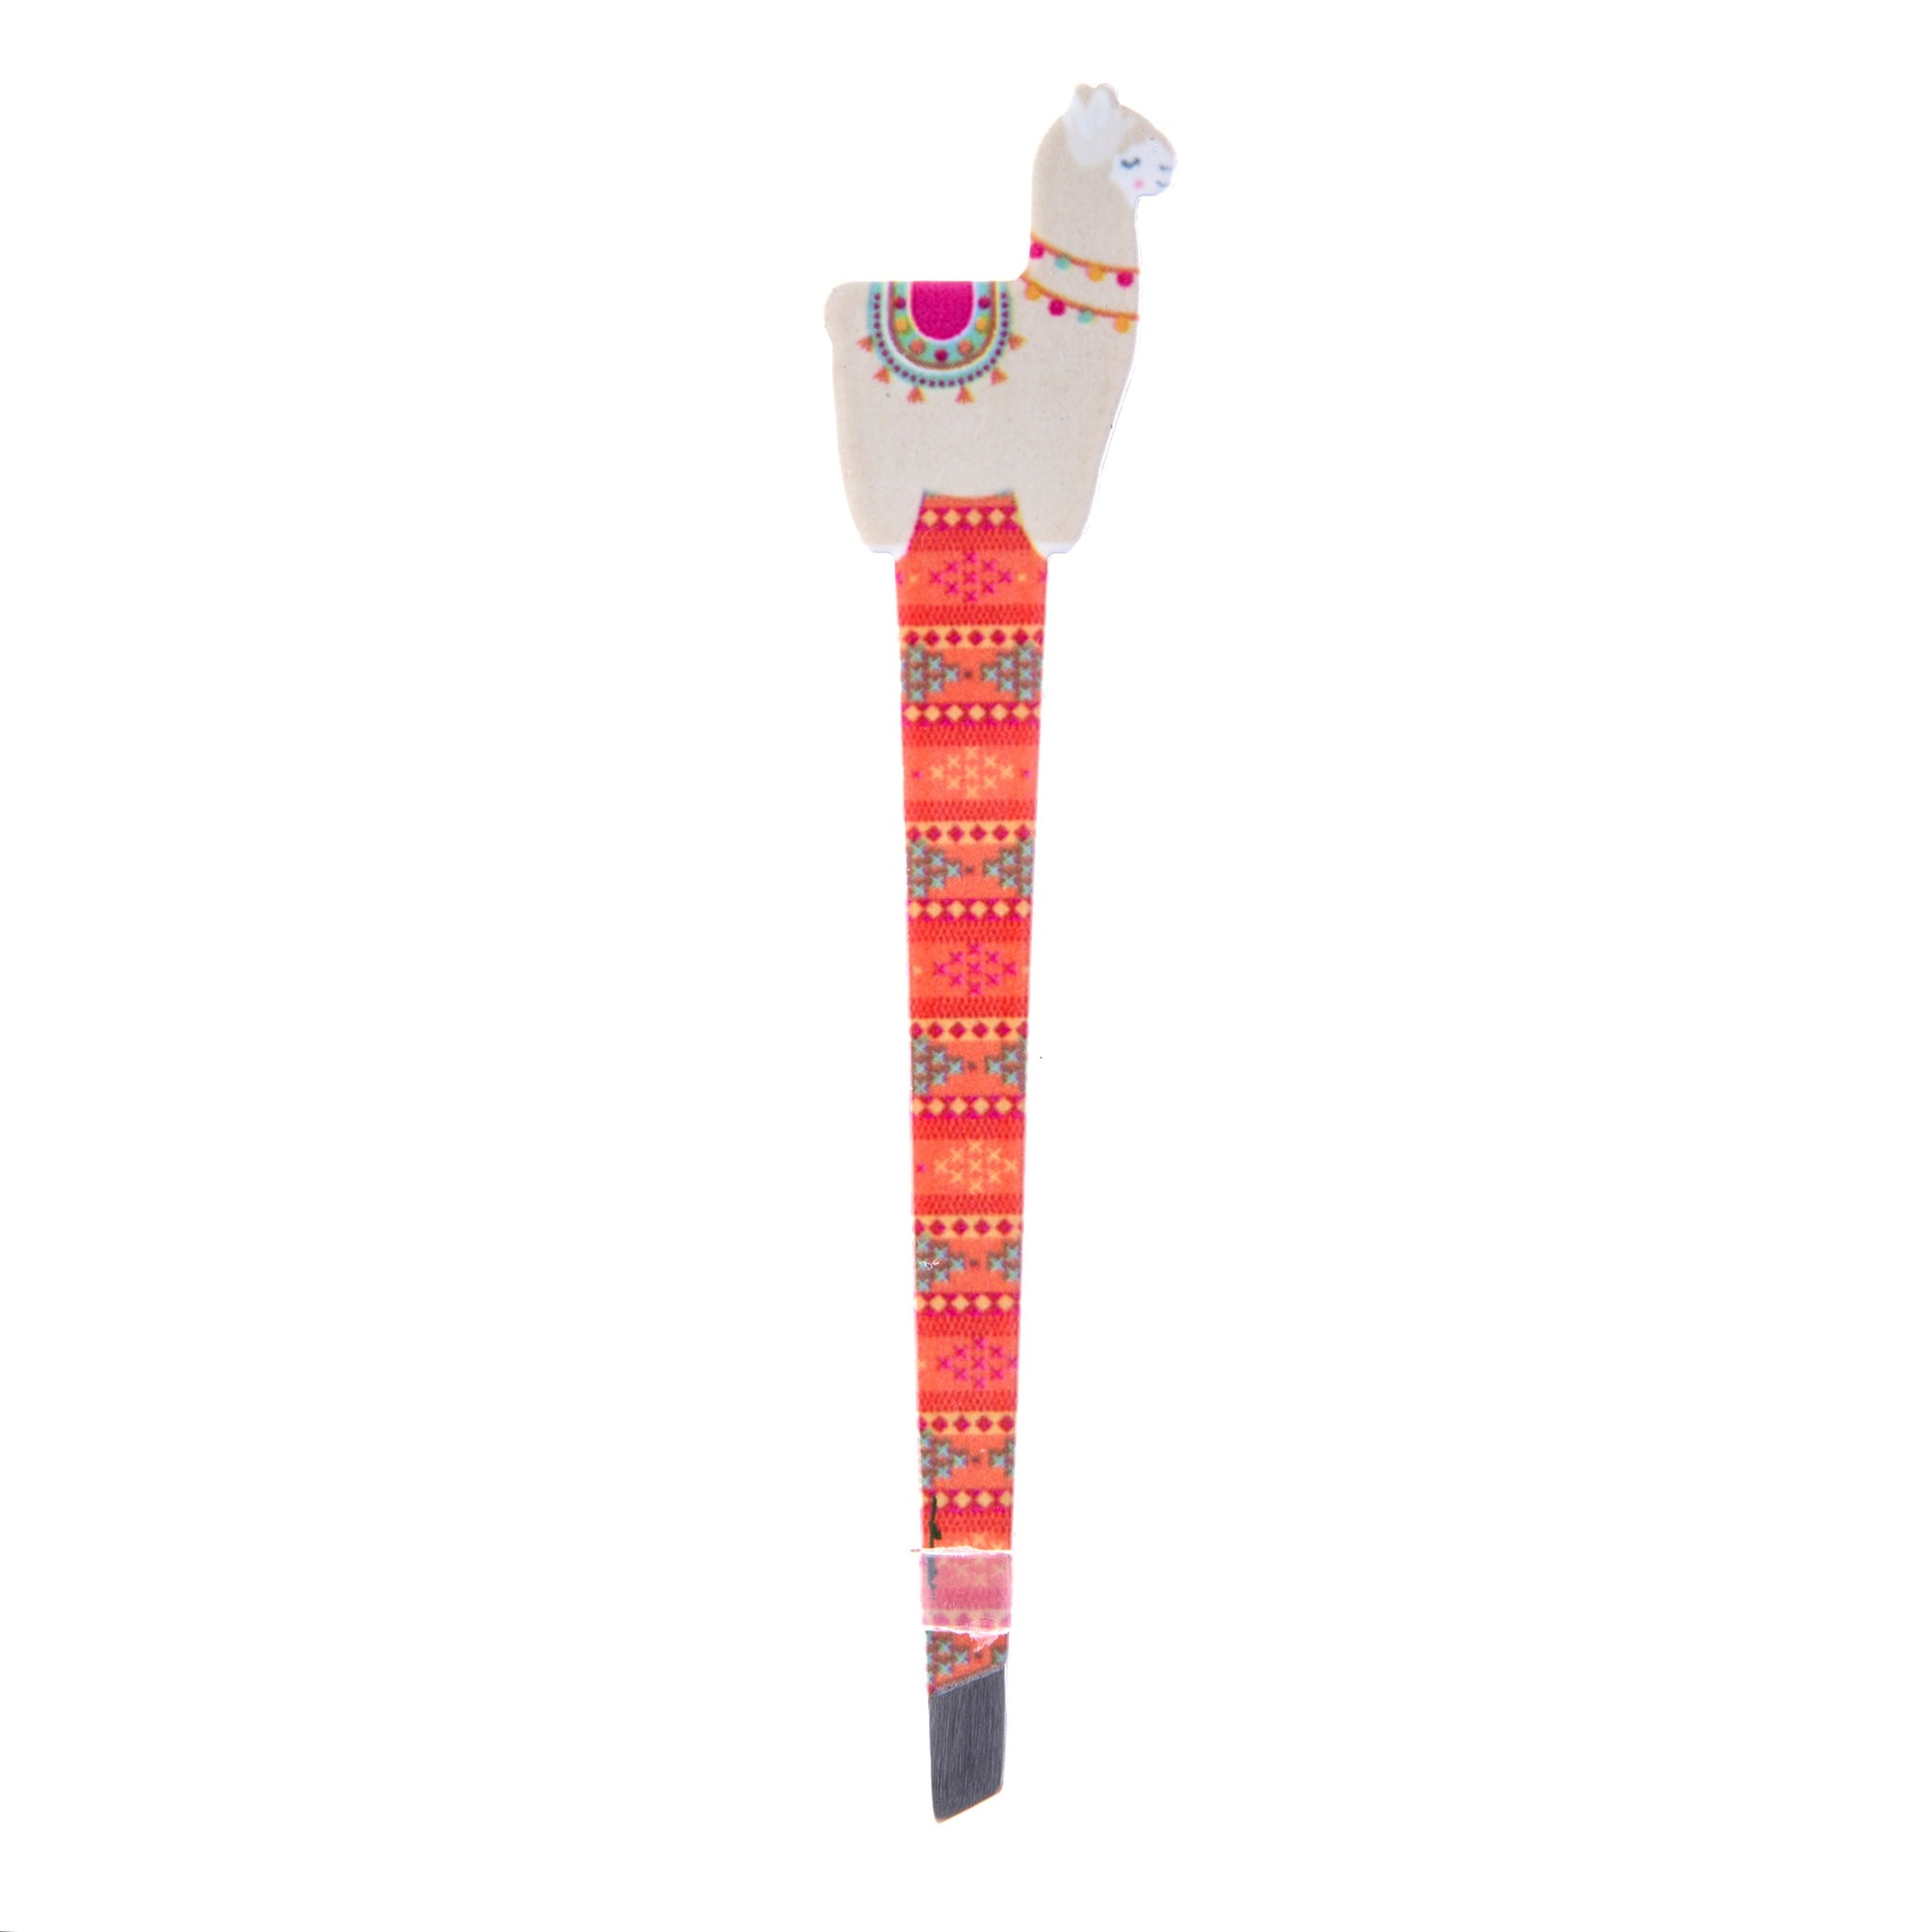 Novelty llama tweezers with pretty peruvian style pattern